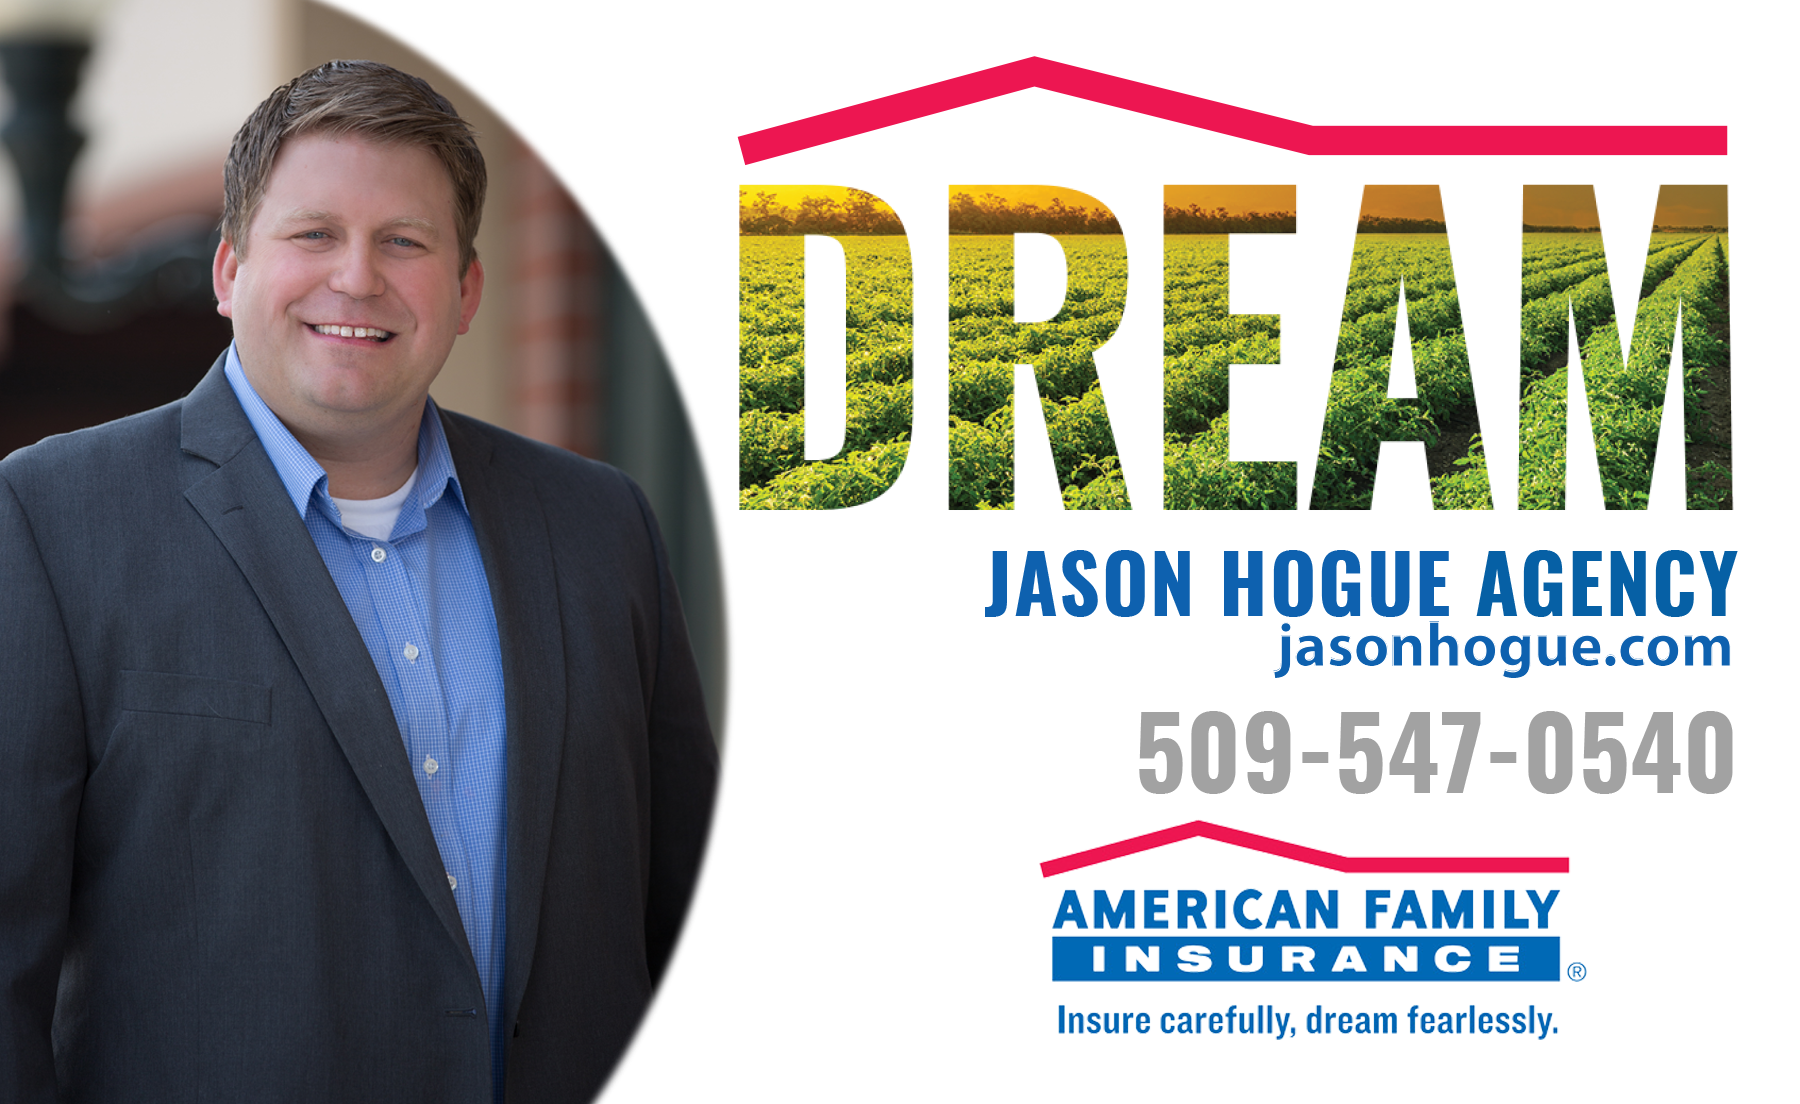 American Family Insurance - Jason Hogue